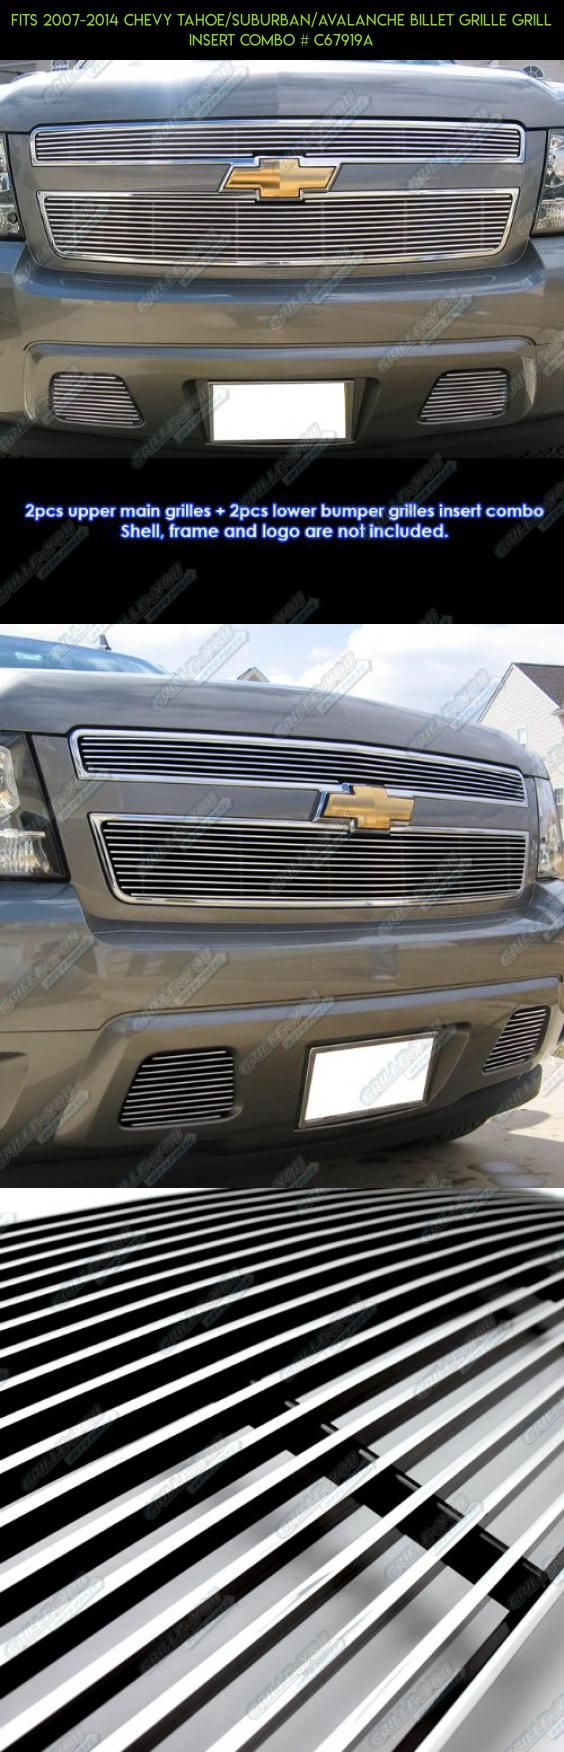 Fits 2007 2014 chevy tahoe suburban avalanche billet grille grill insert combo